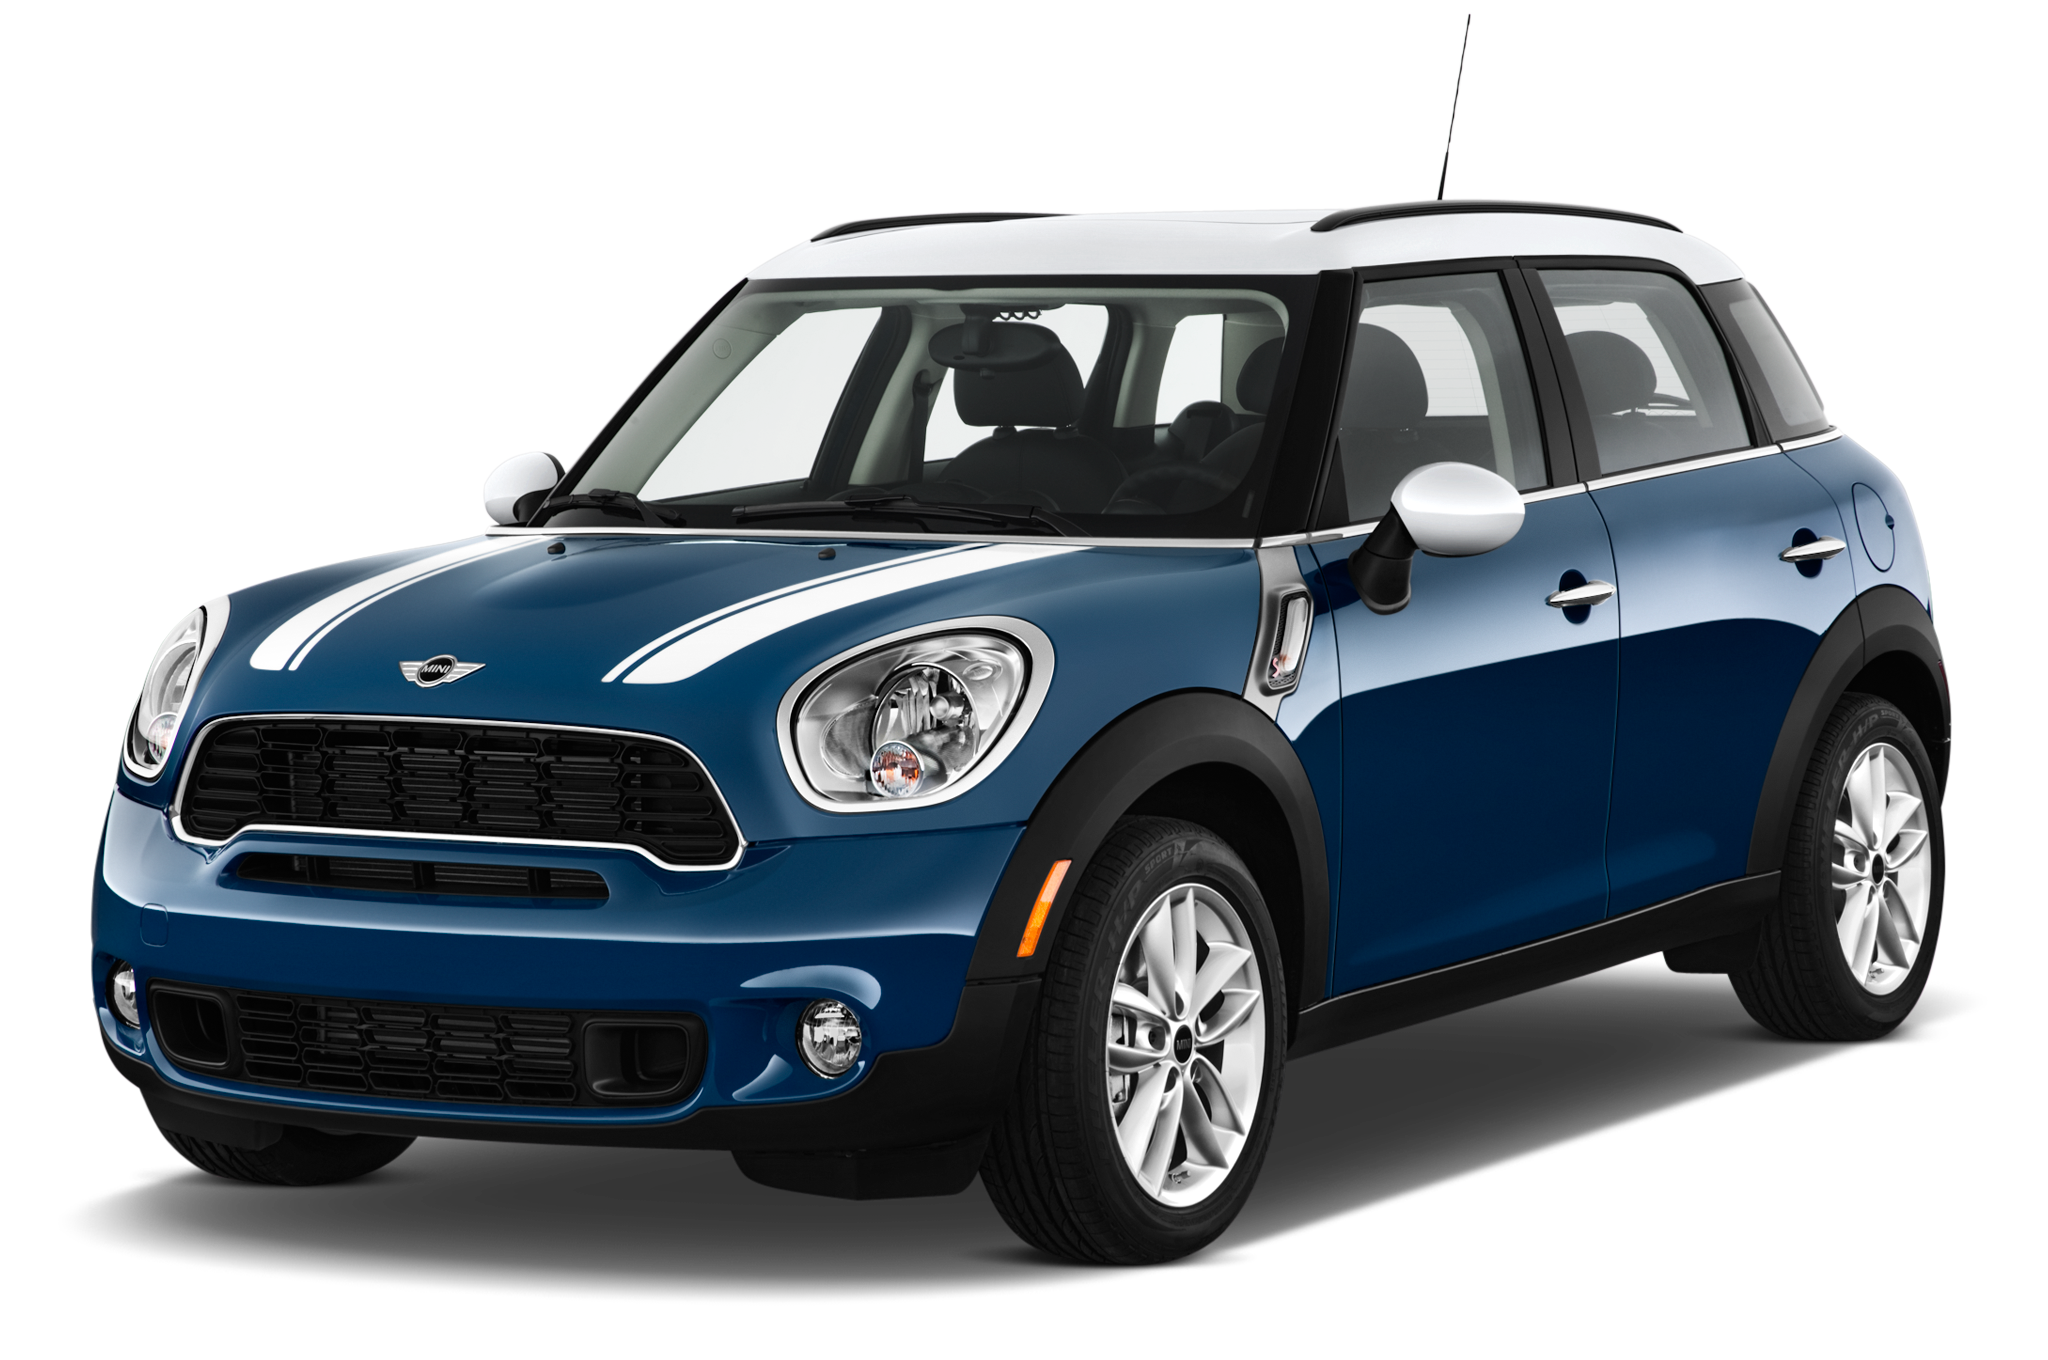 2016 mini cooper countryman reviews and rating | motortrend